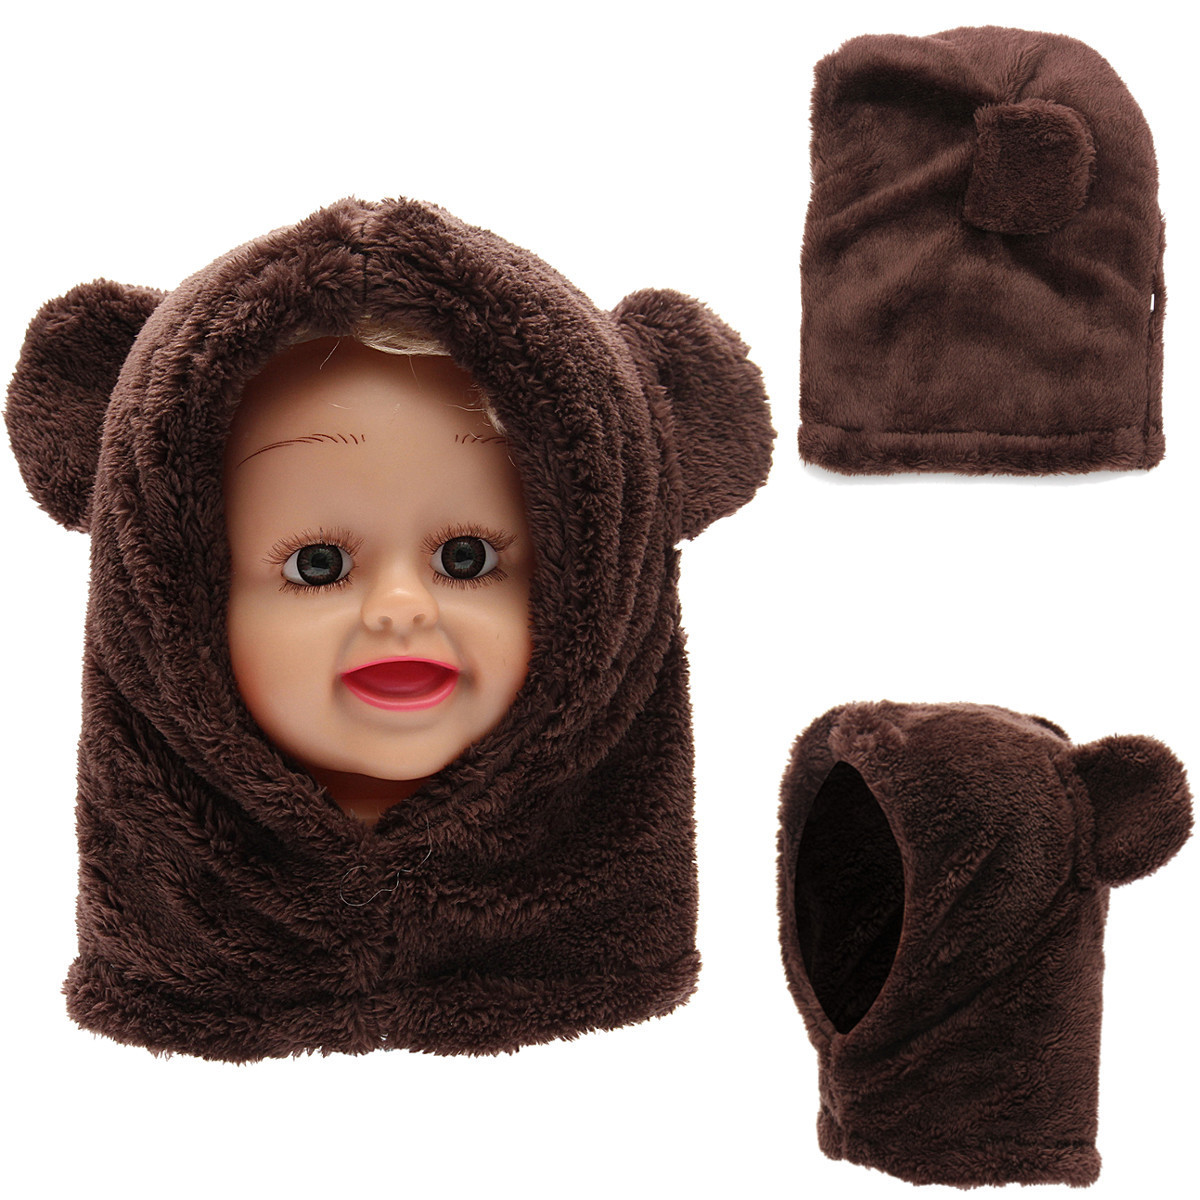 Toddler Scarf Best Of toddler Boy Girl Baby Kids Cute Warm Winter Fluffy Bear Of Attractive 43 Pics toddler Scarf